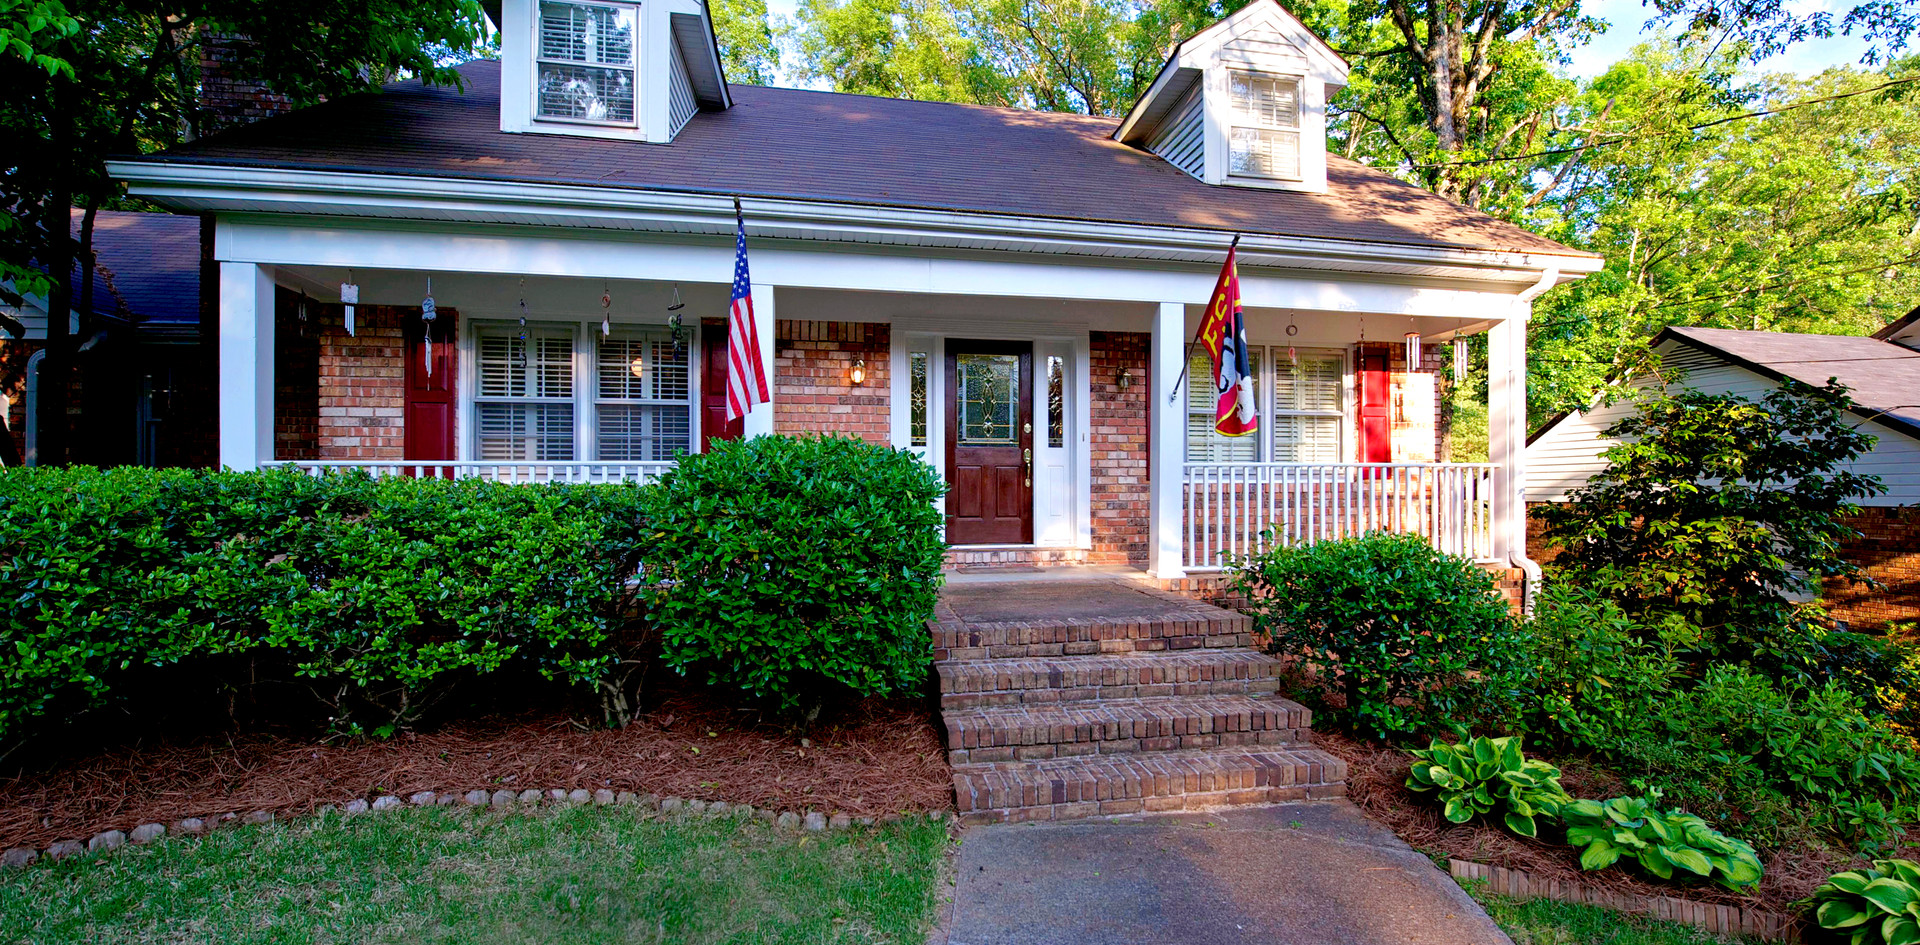 SOLD for $319,000 - Represented Seller